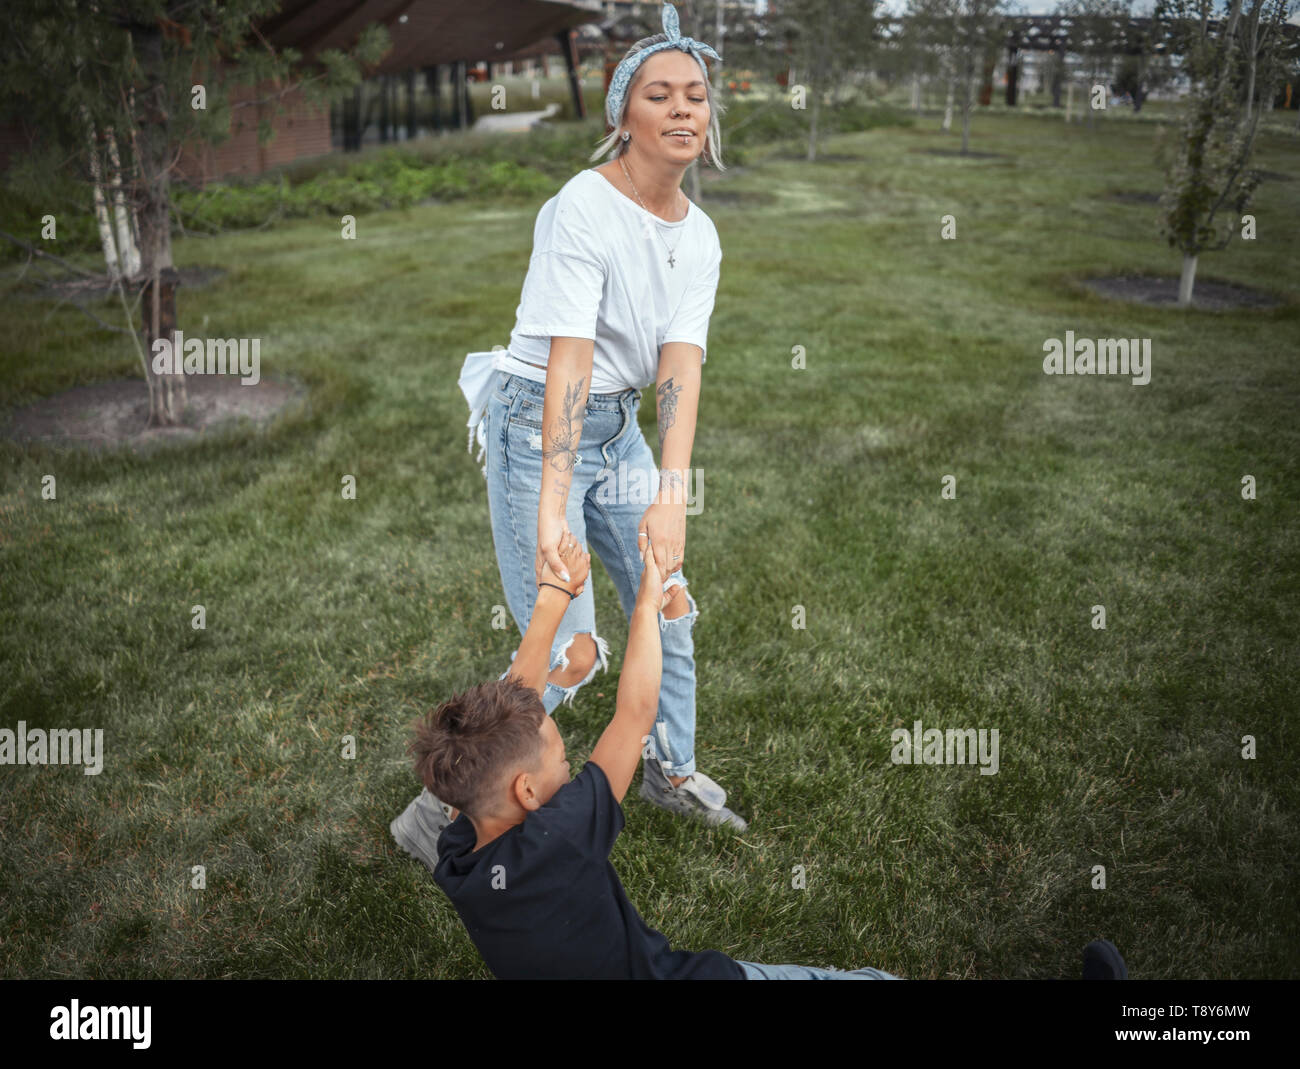 Young pretty mum whirling with her son at park. Happy family concept. - Stock Image